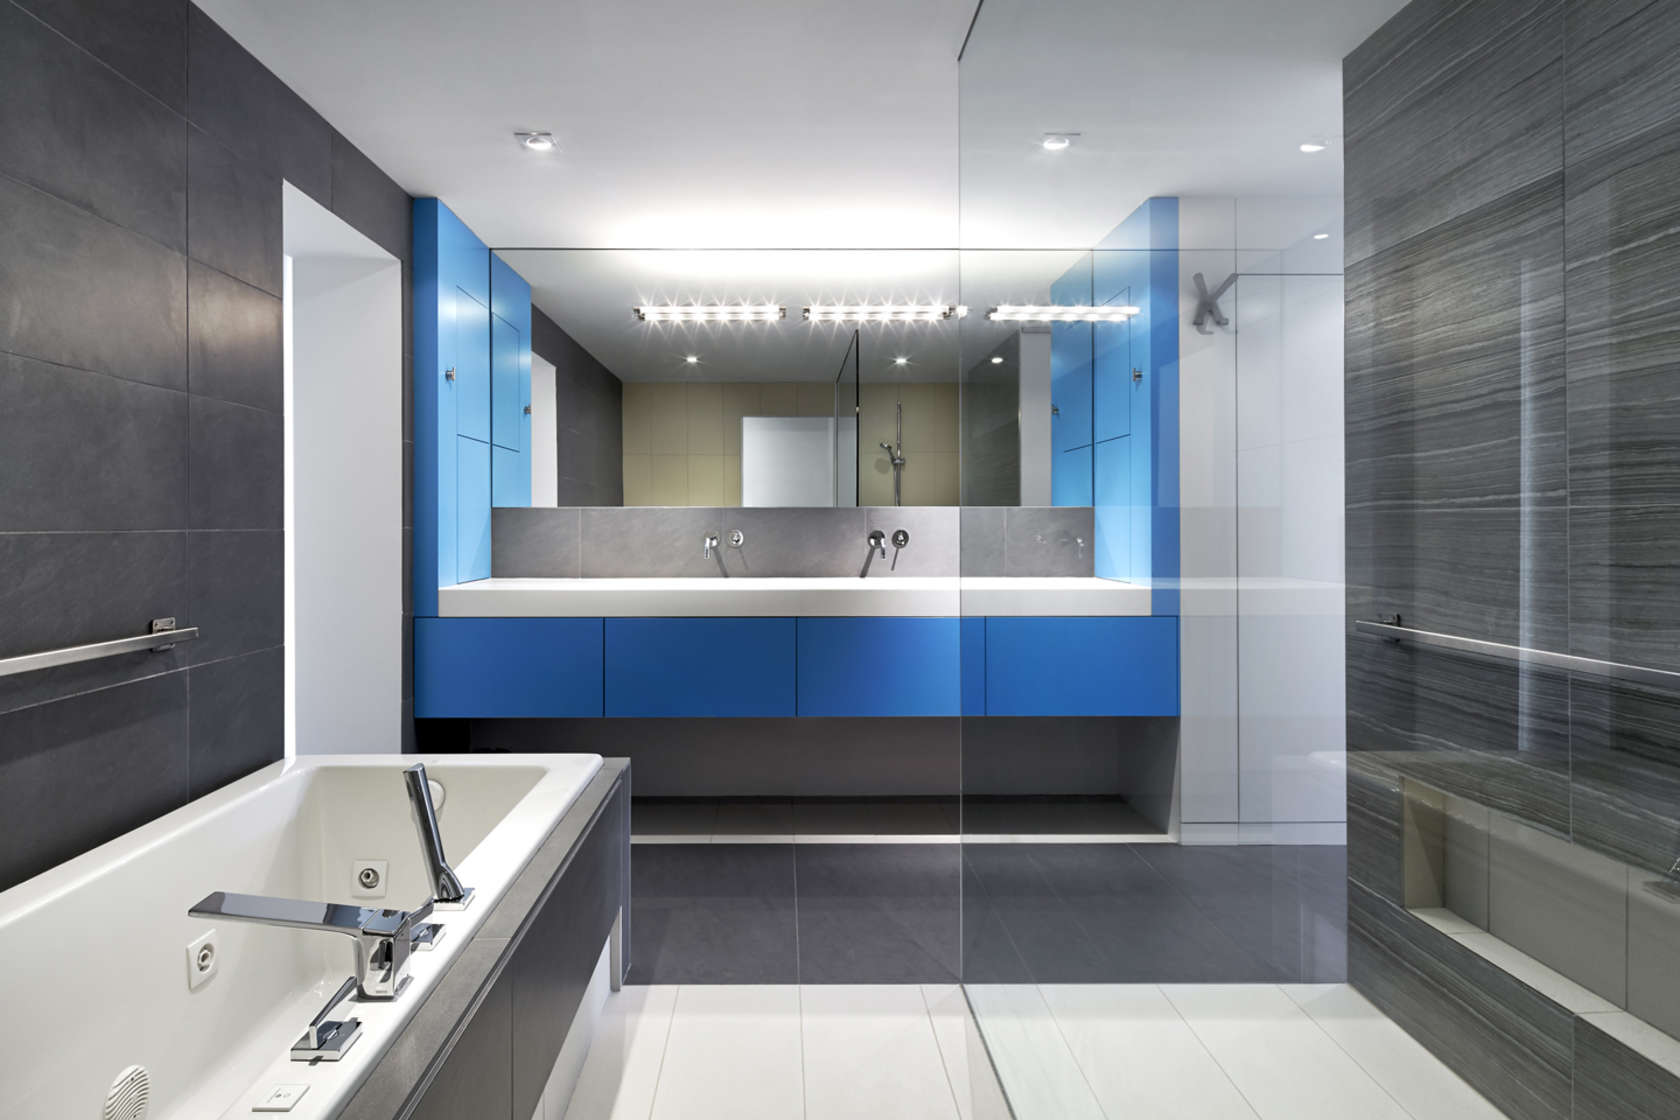 modernluxurybathroom Interior Design Ideas